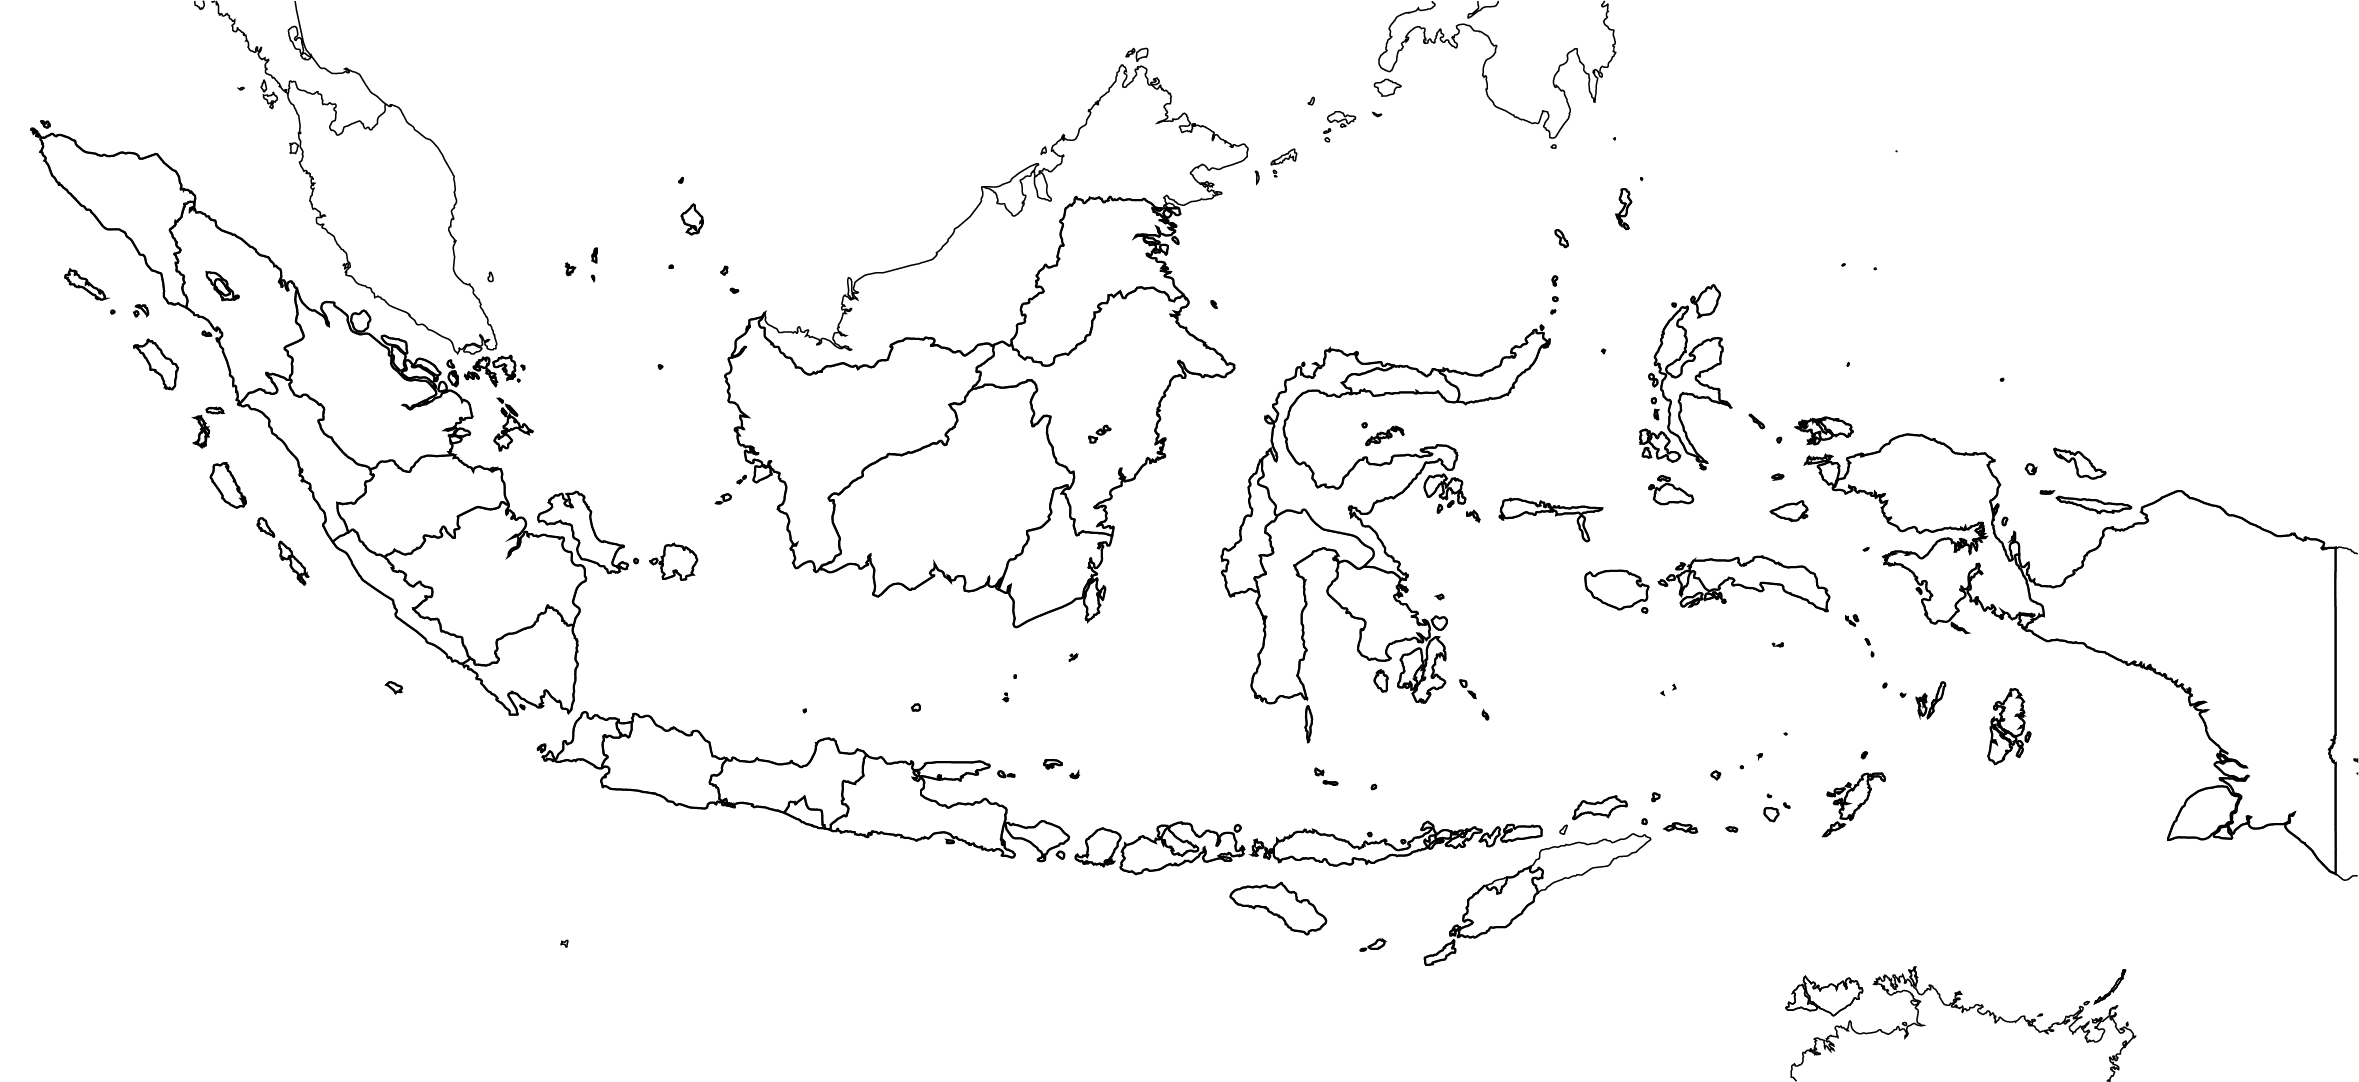 https://i2.wp.com/upload.wikimedia.org/wikipedia/commons/3/39/Indonesia_provinces_blank.png